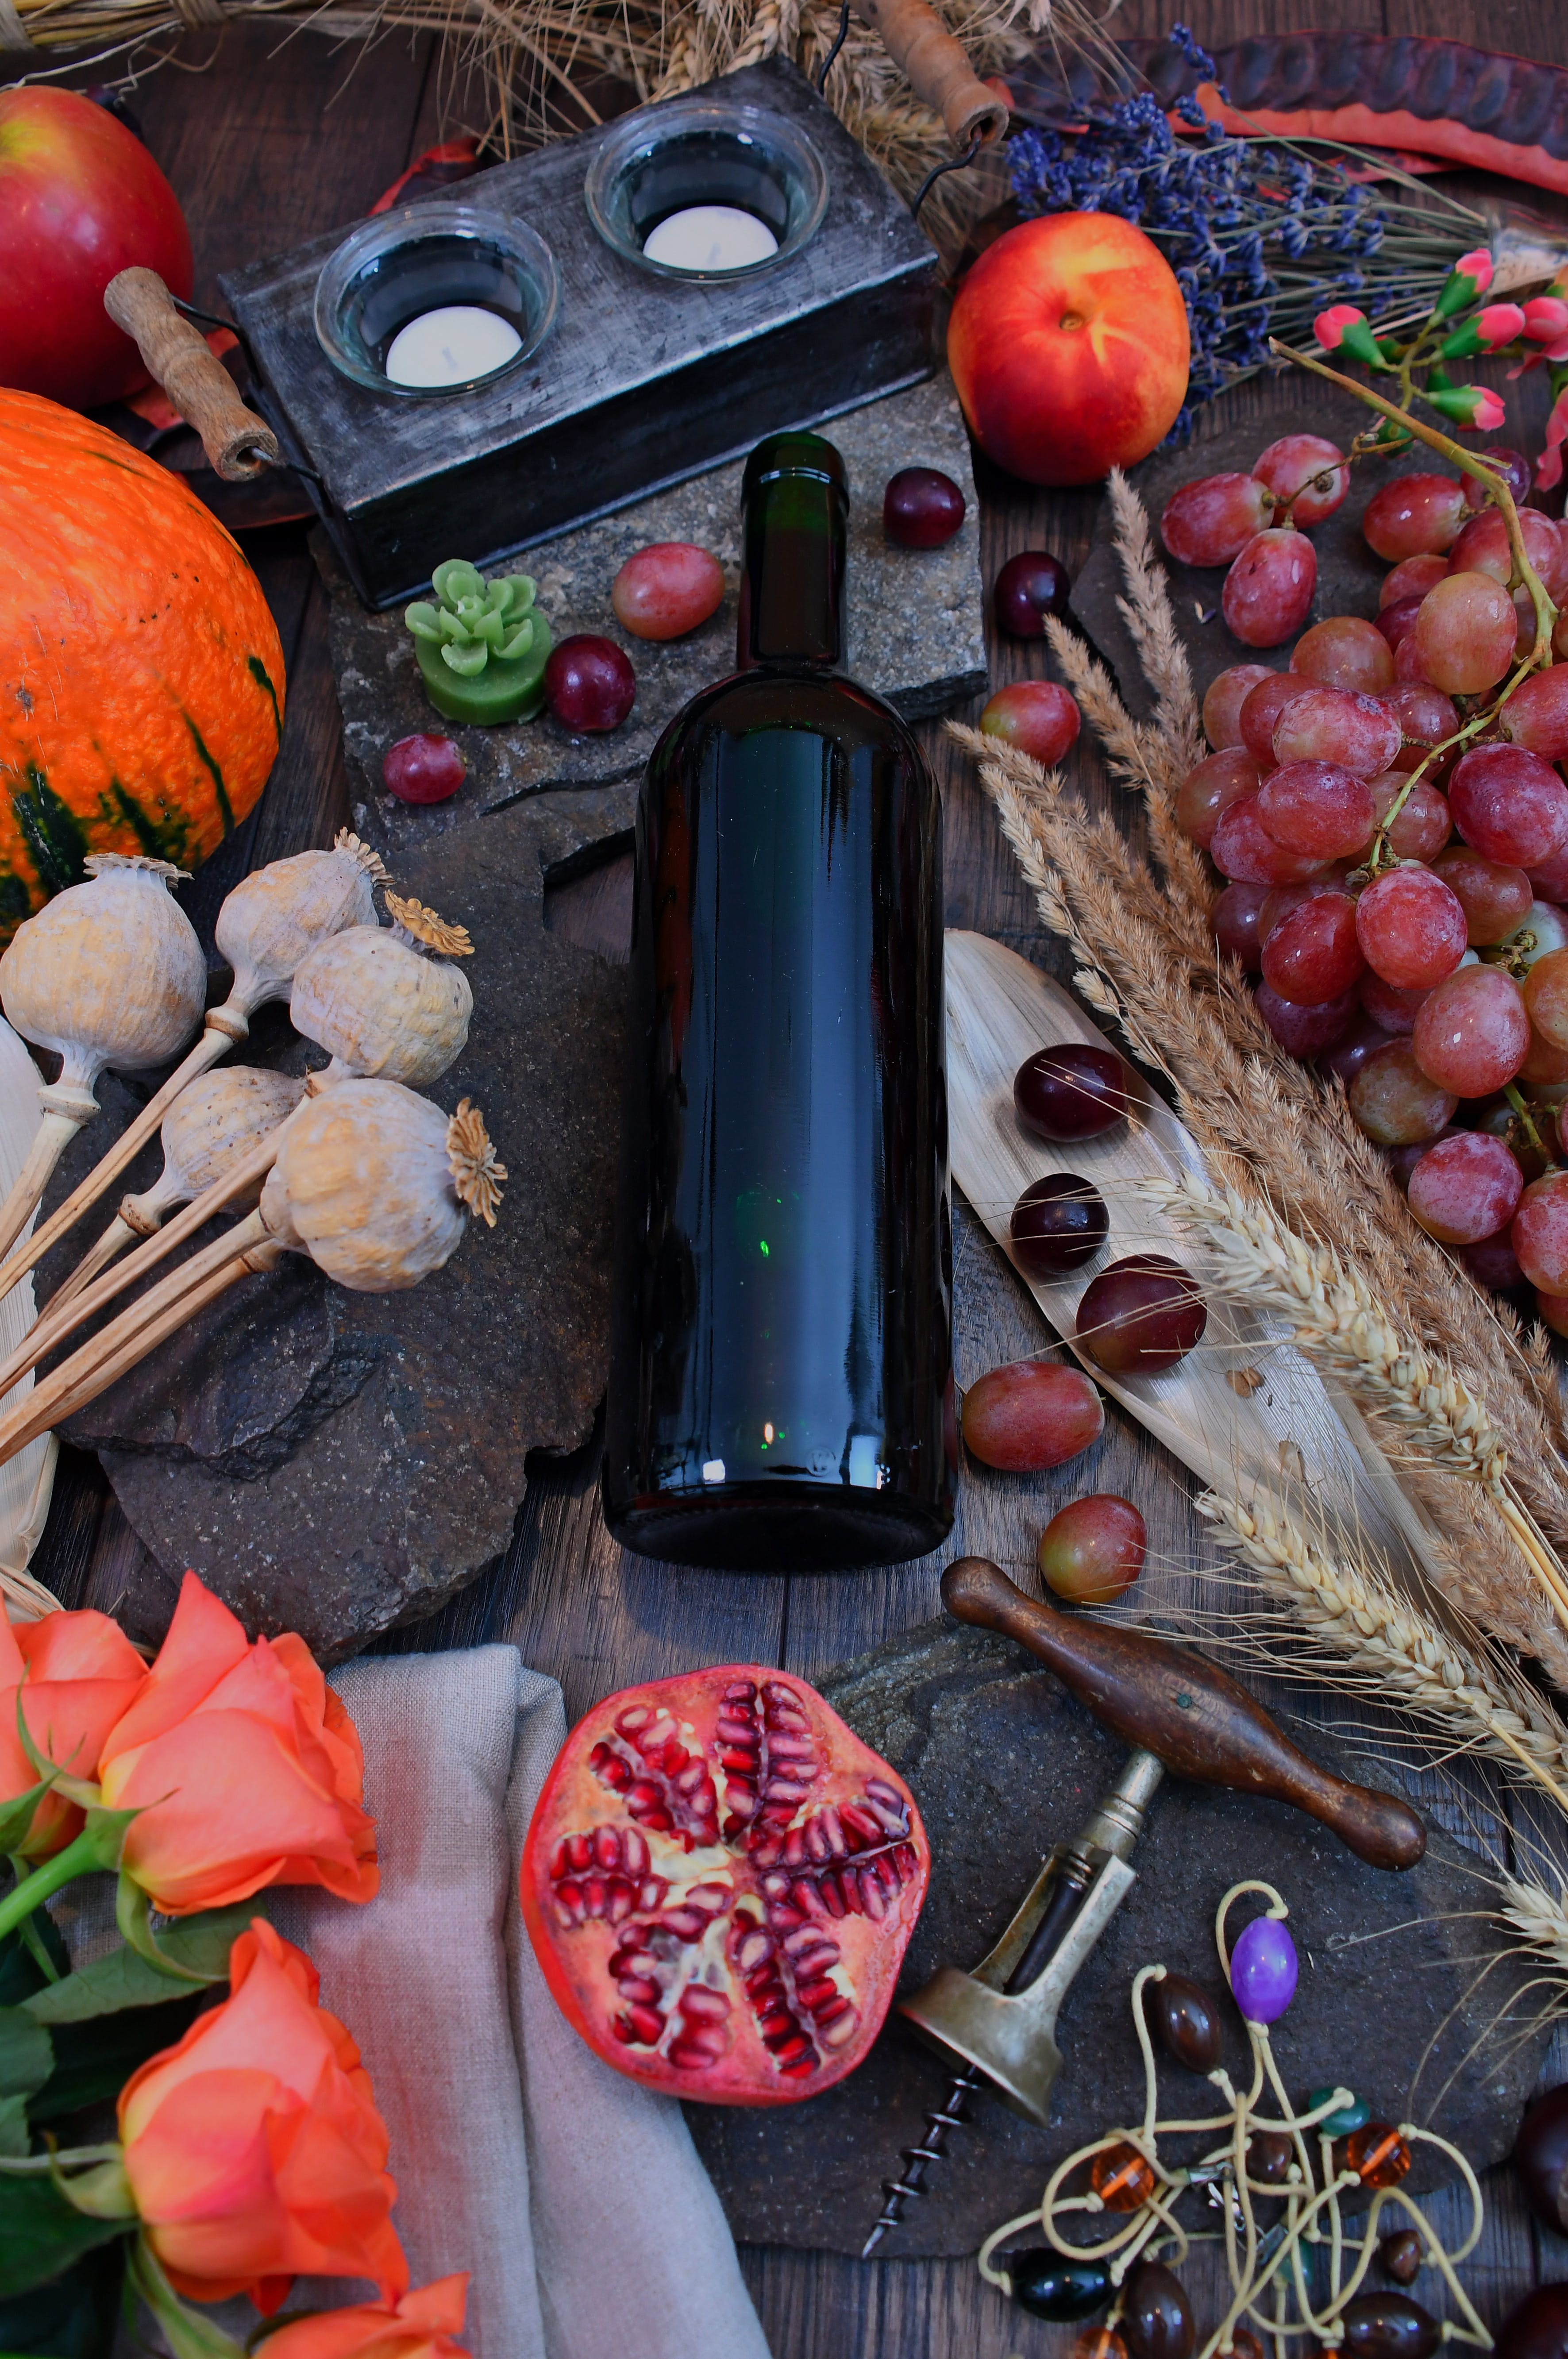 Wine Bottle Surrounded With Vegetables and Fruit on Brown Wooden Surface